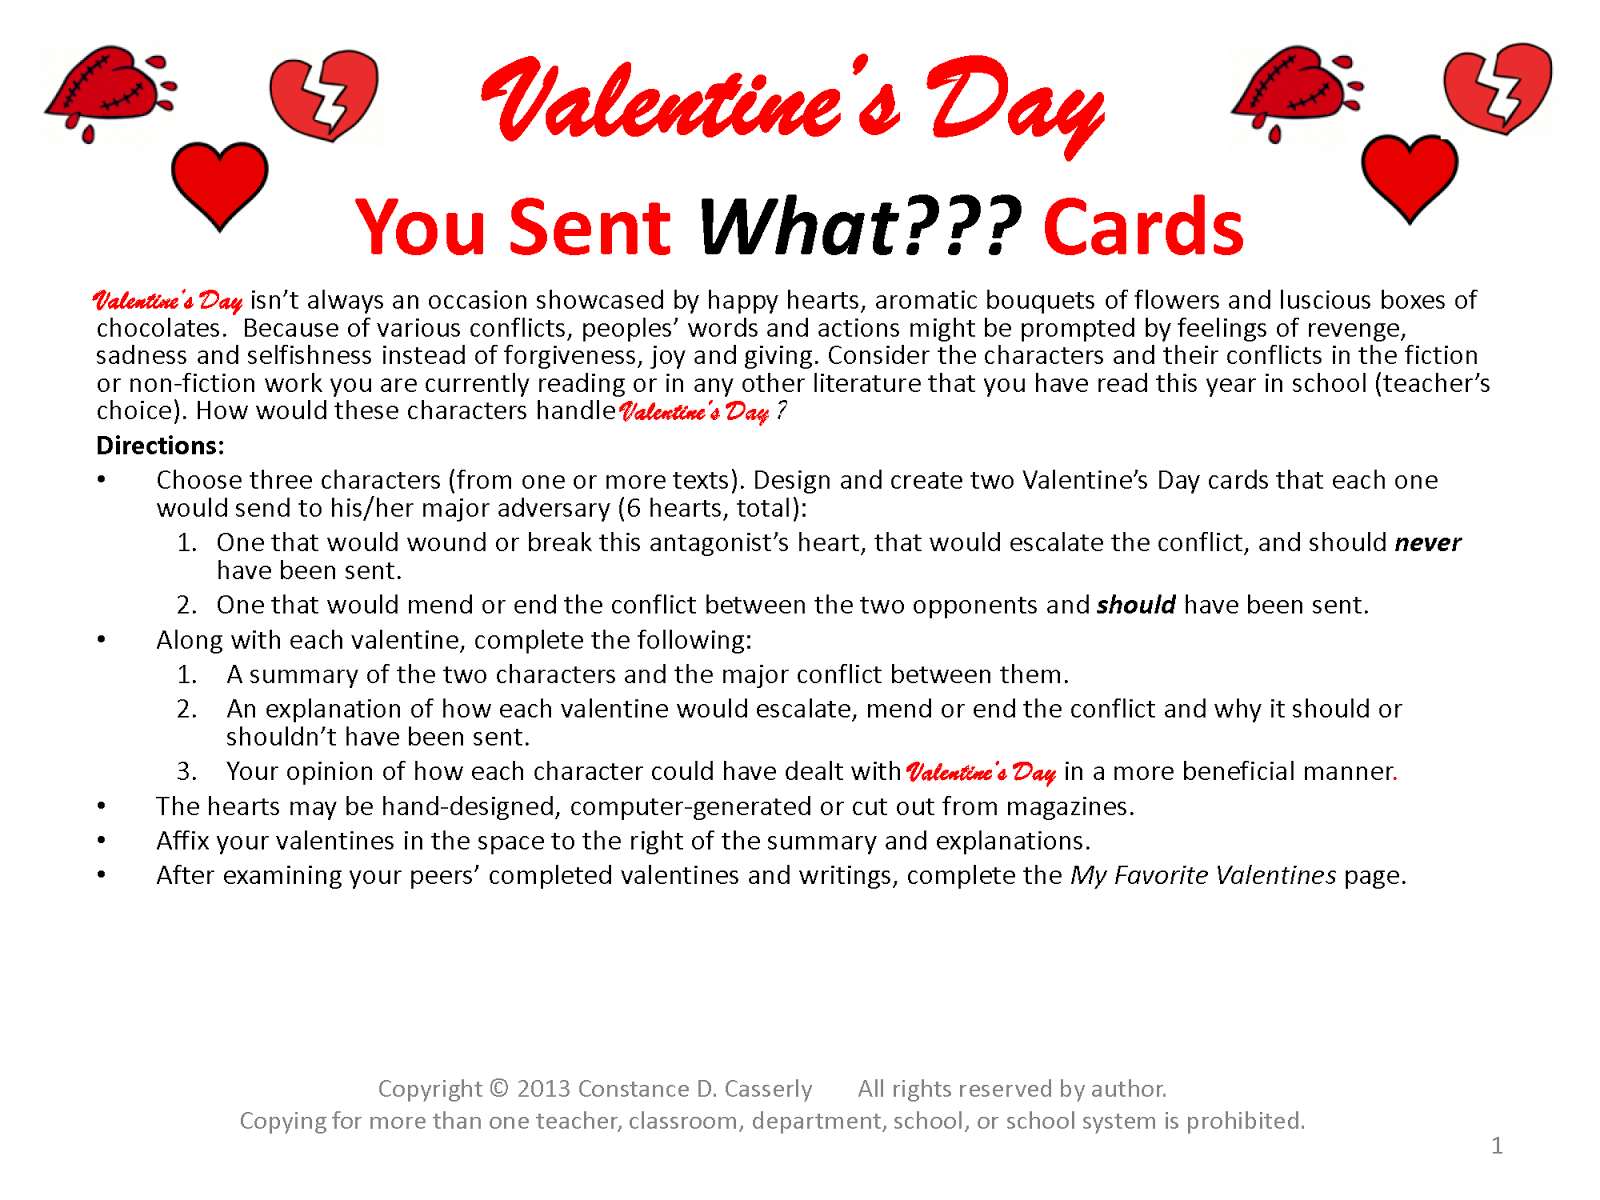 Activity: Valentine's Day You Sent What??? Cards